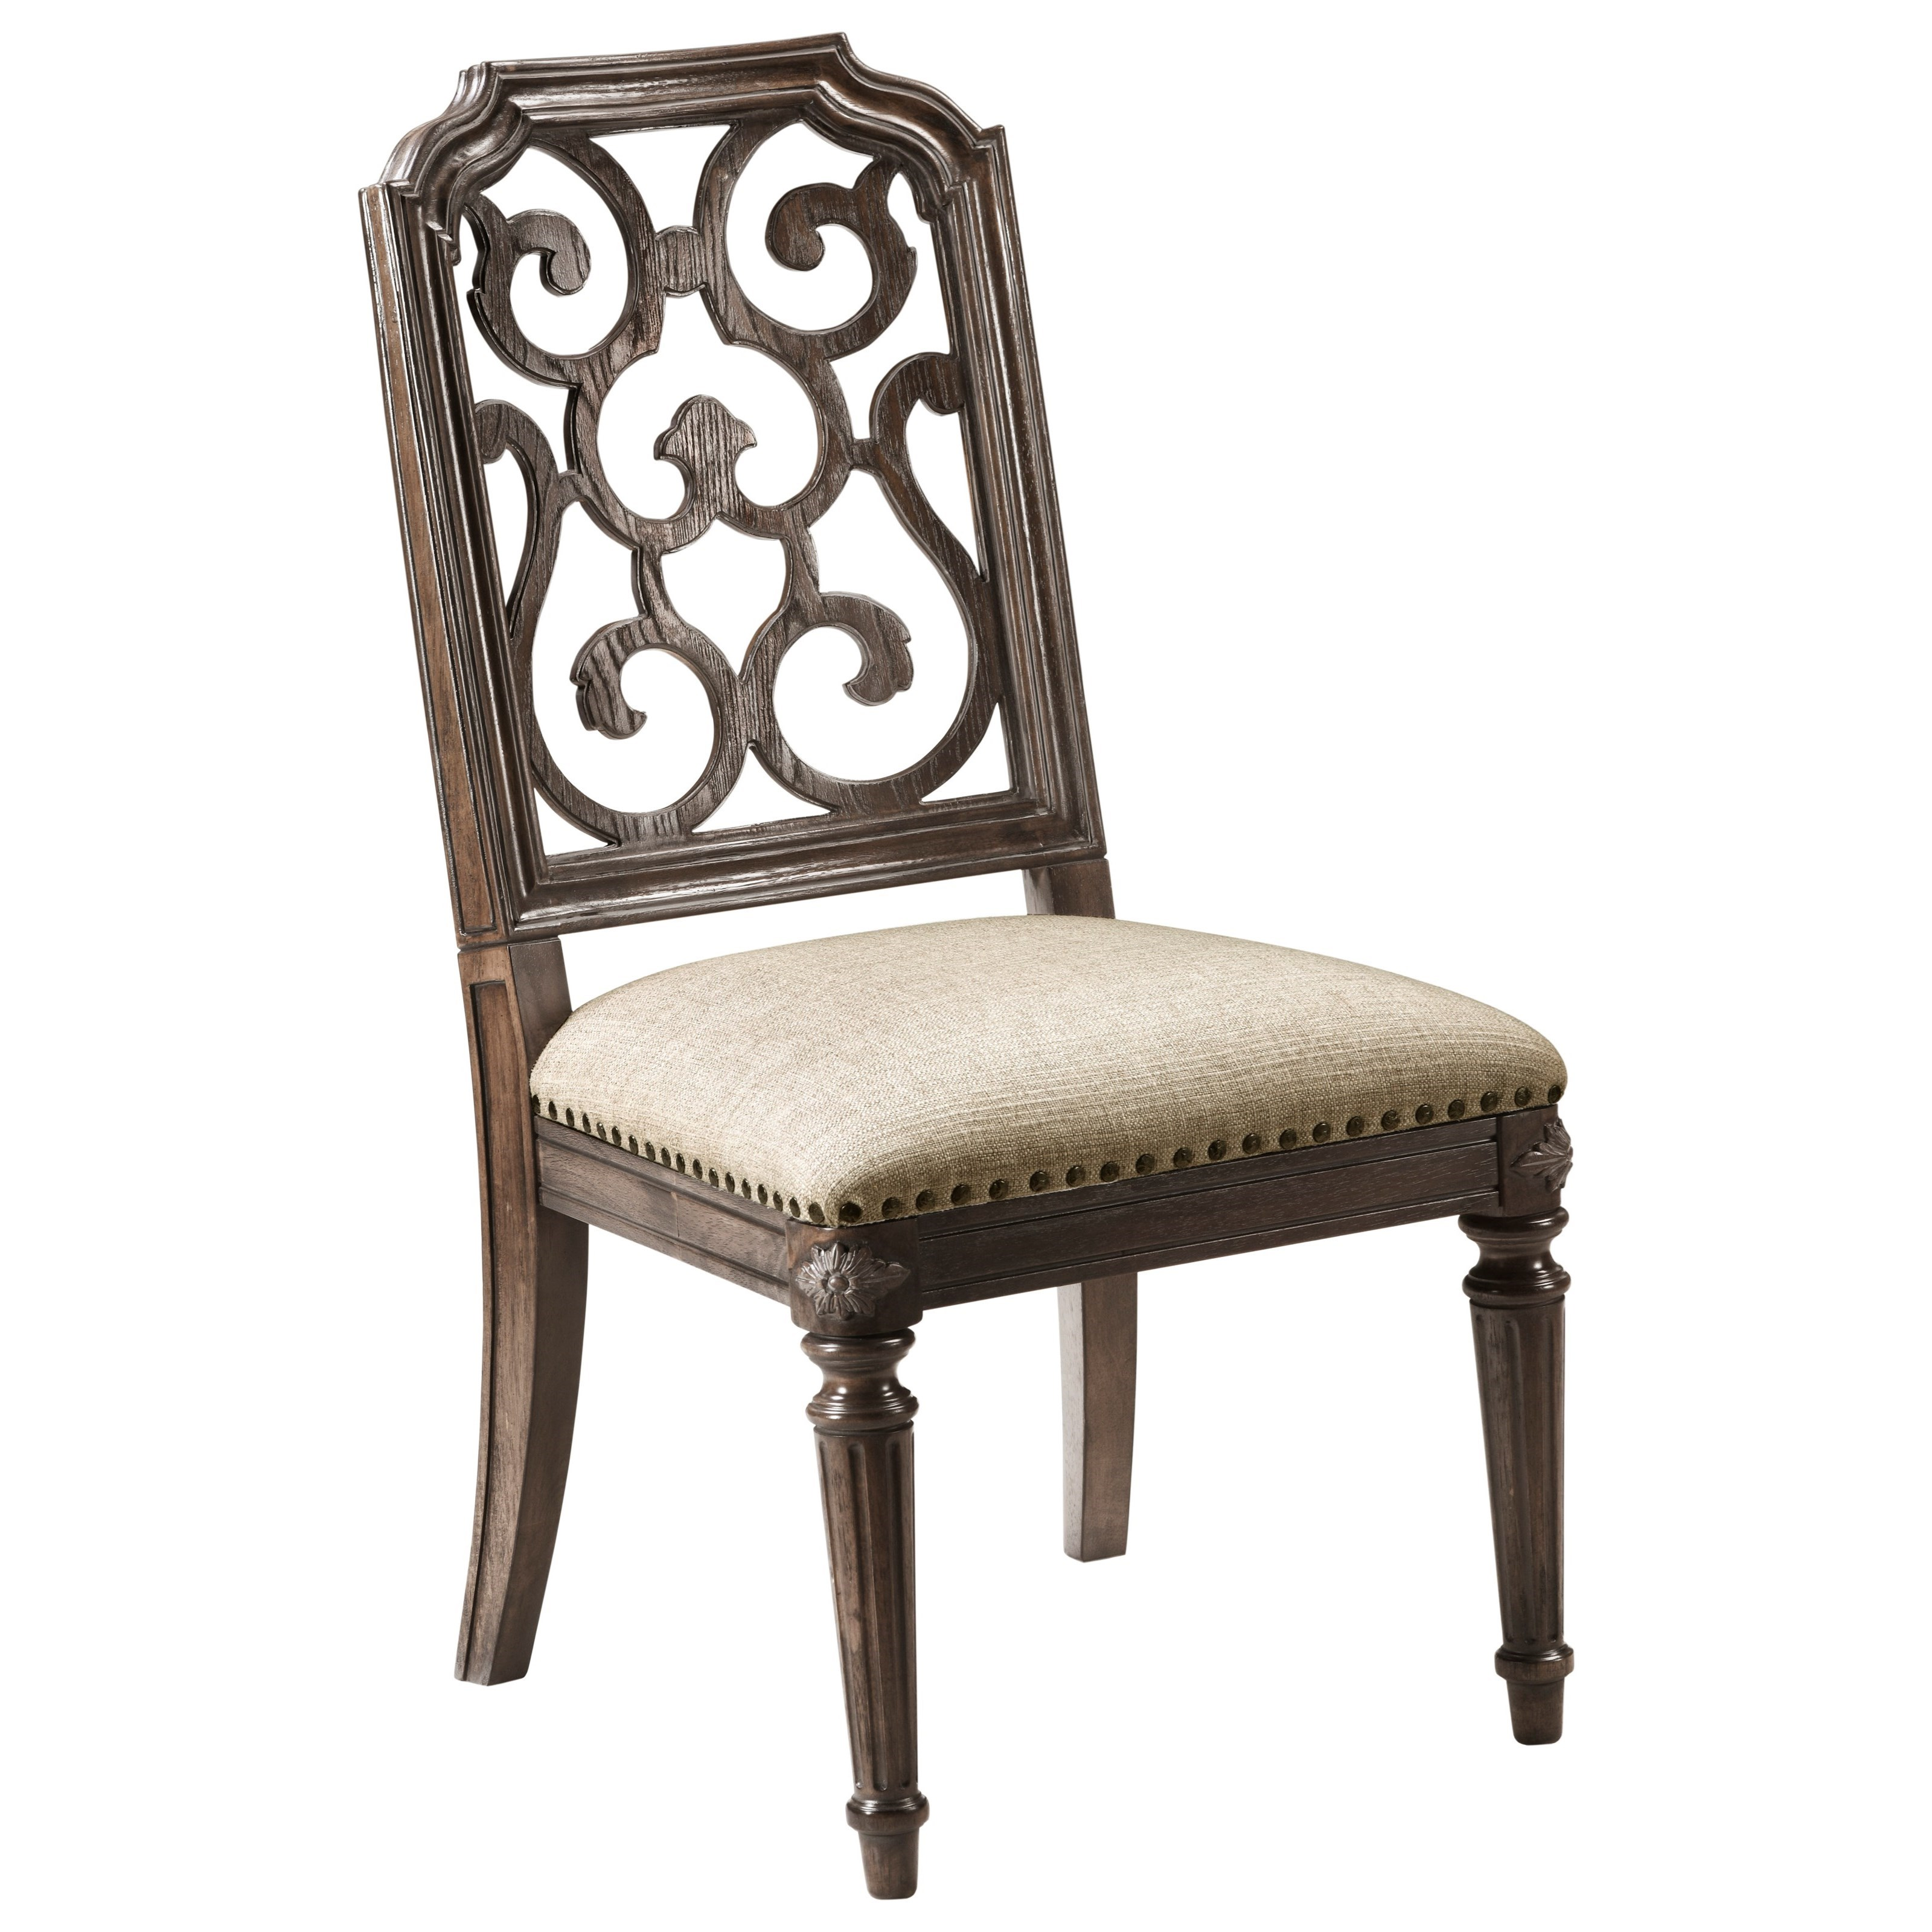 Vintage Salvage  Tristan Fret Back Side Chair  by A.R.T. Furniture Inc at Home Collections Furniture